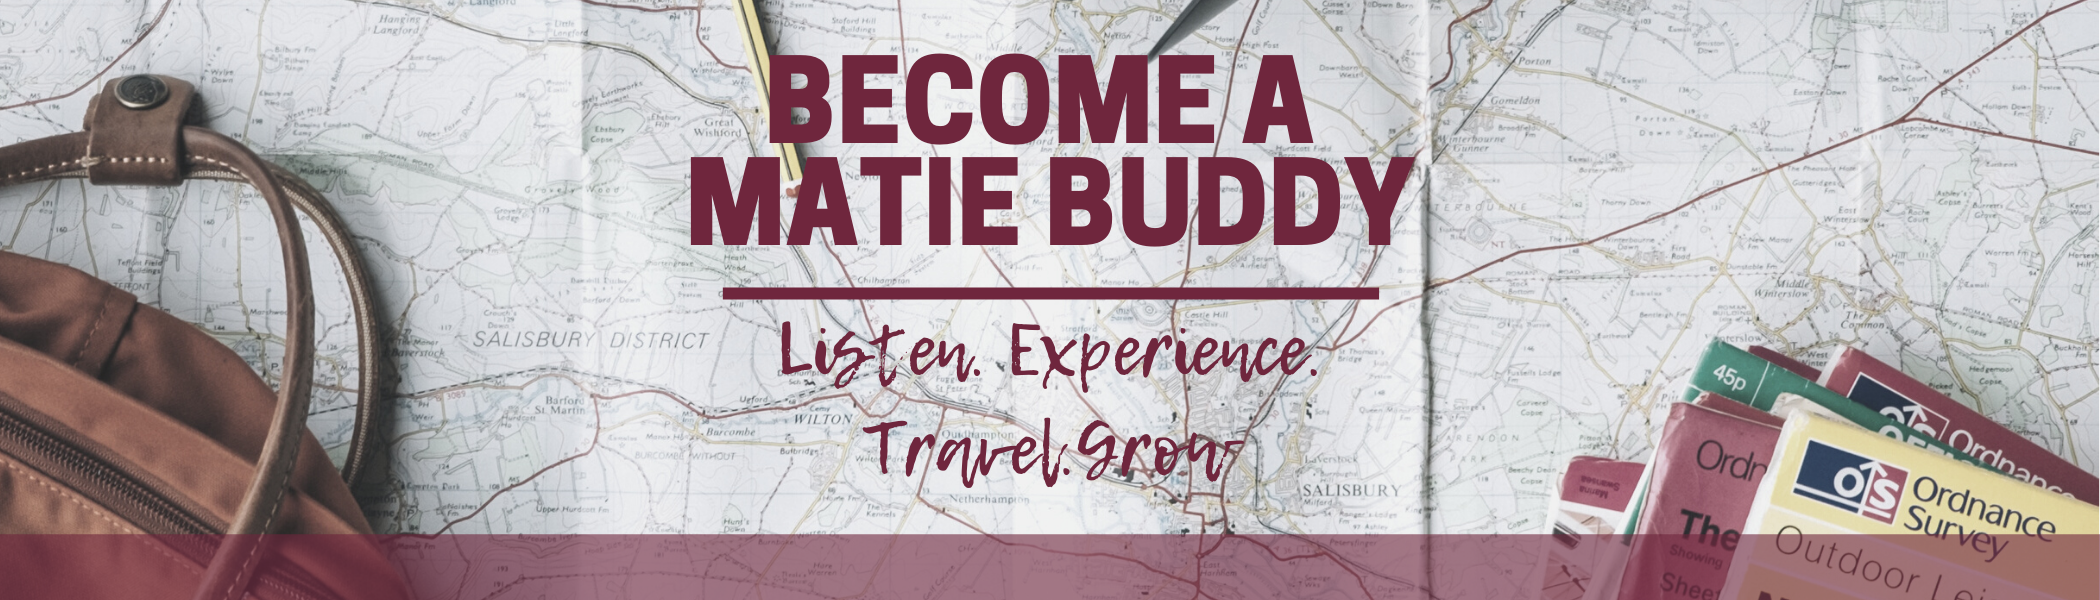 Apply to Become a Matie Buddy